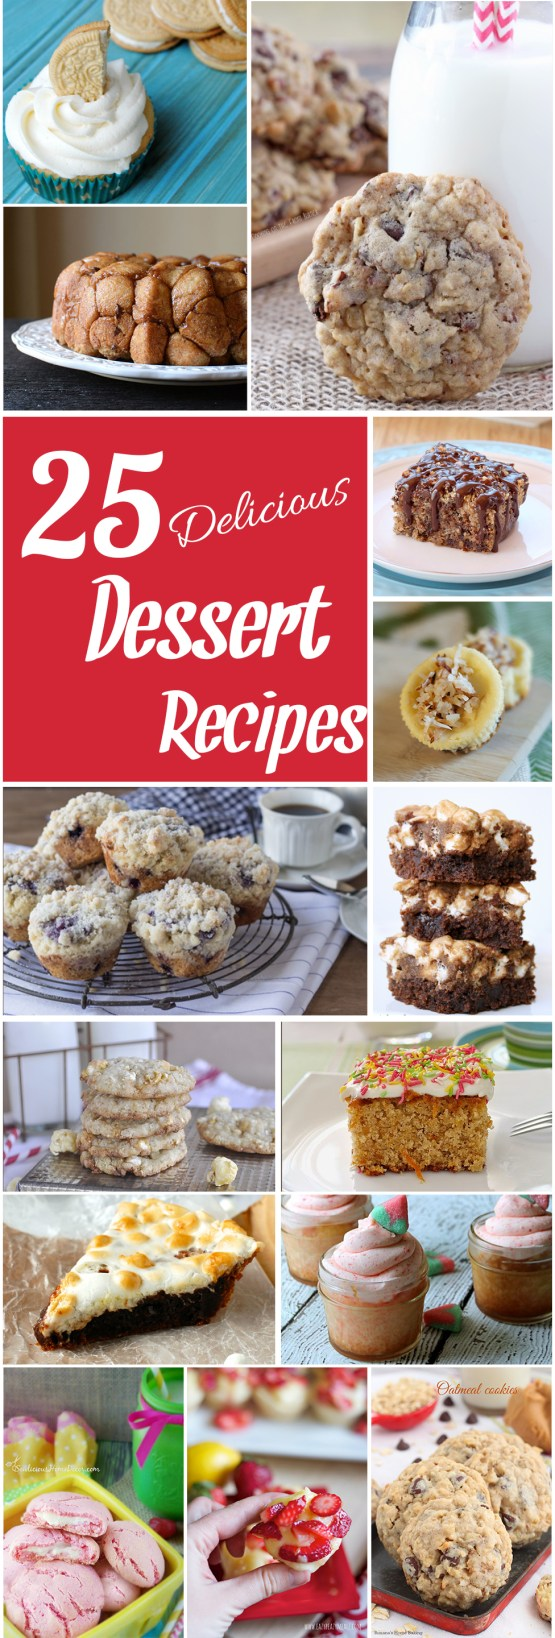 25 Delicious Dessert Recipes